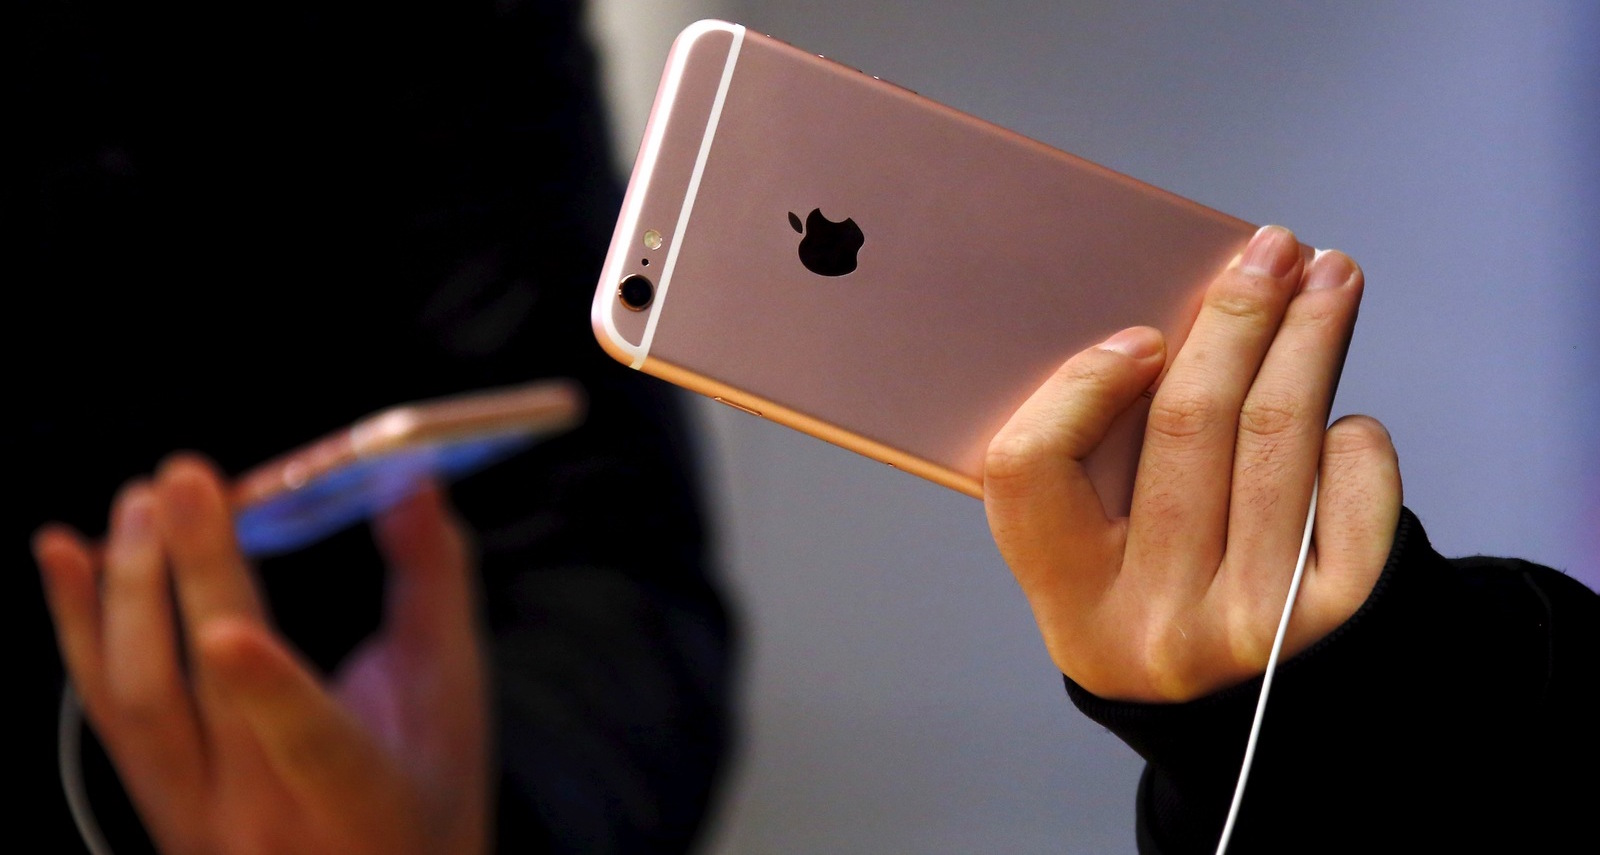 What will make you buy an iPhone 7?